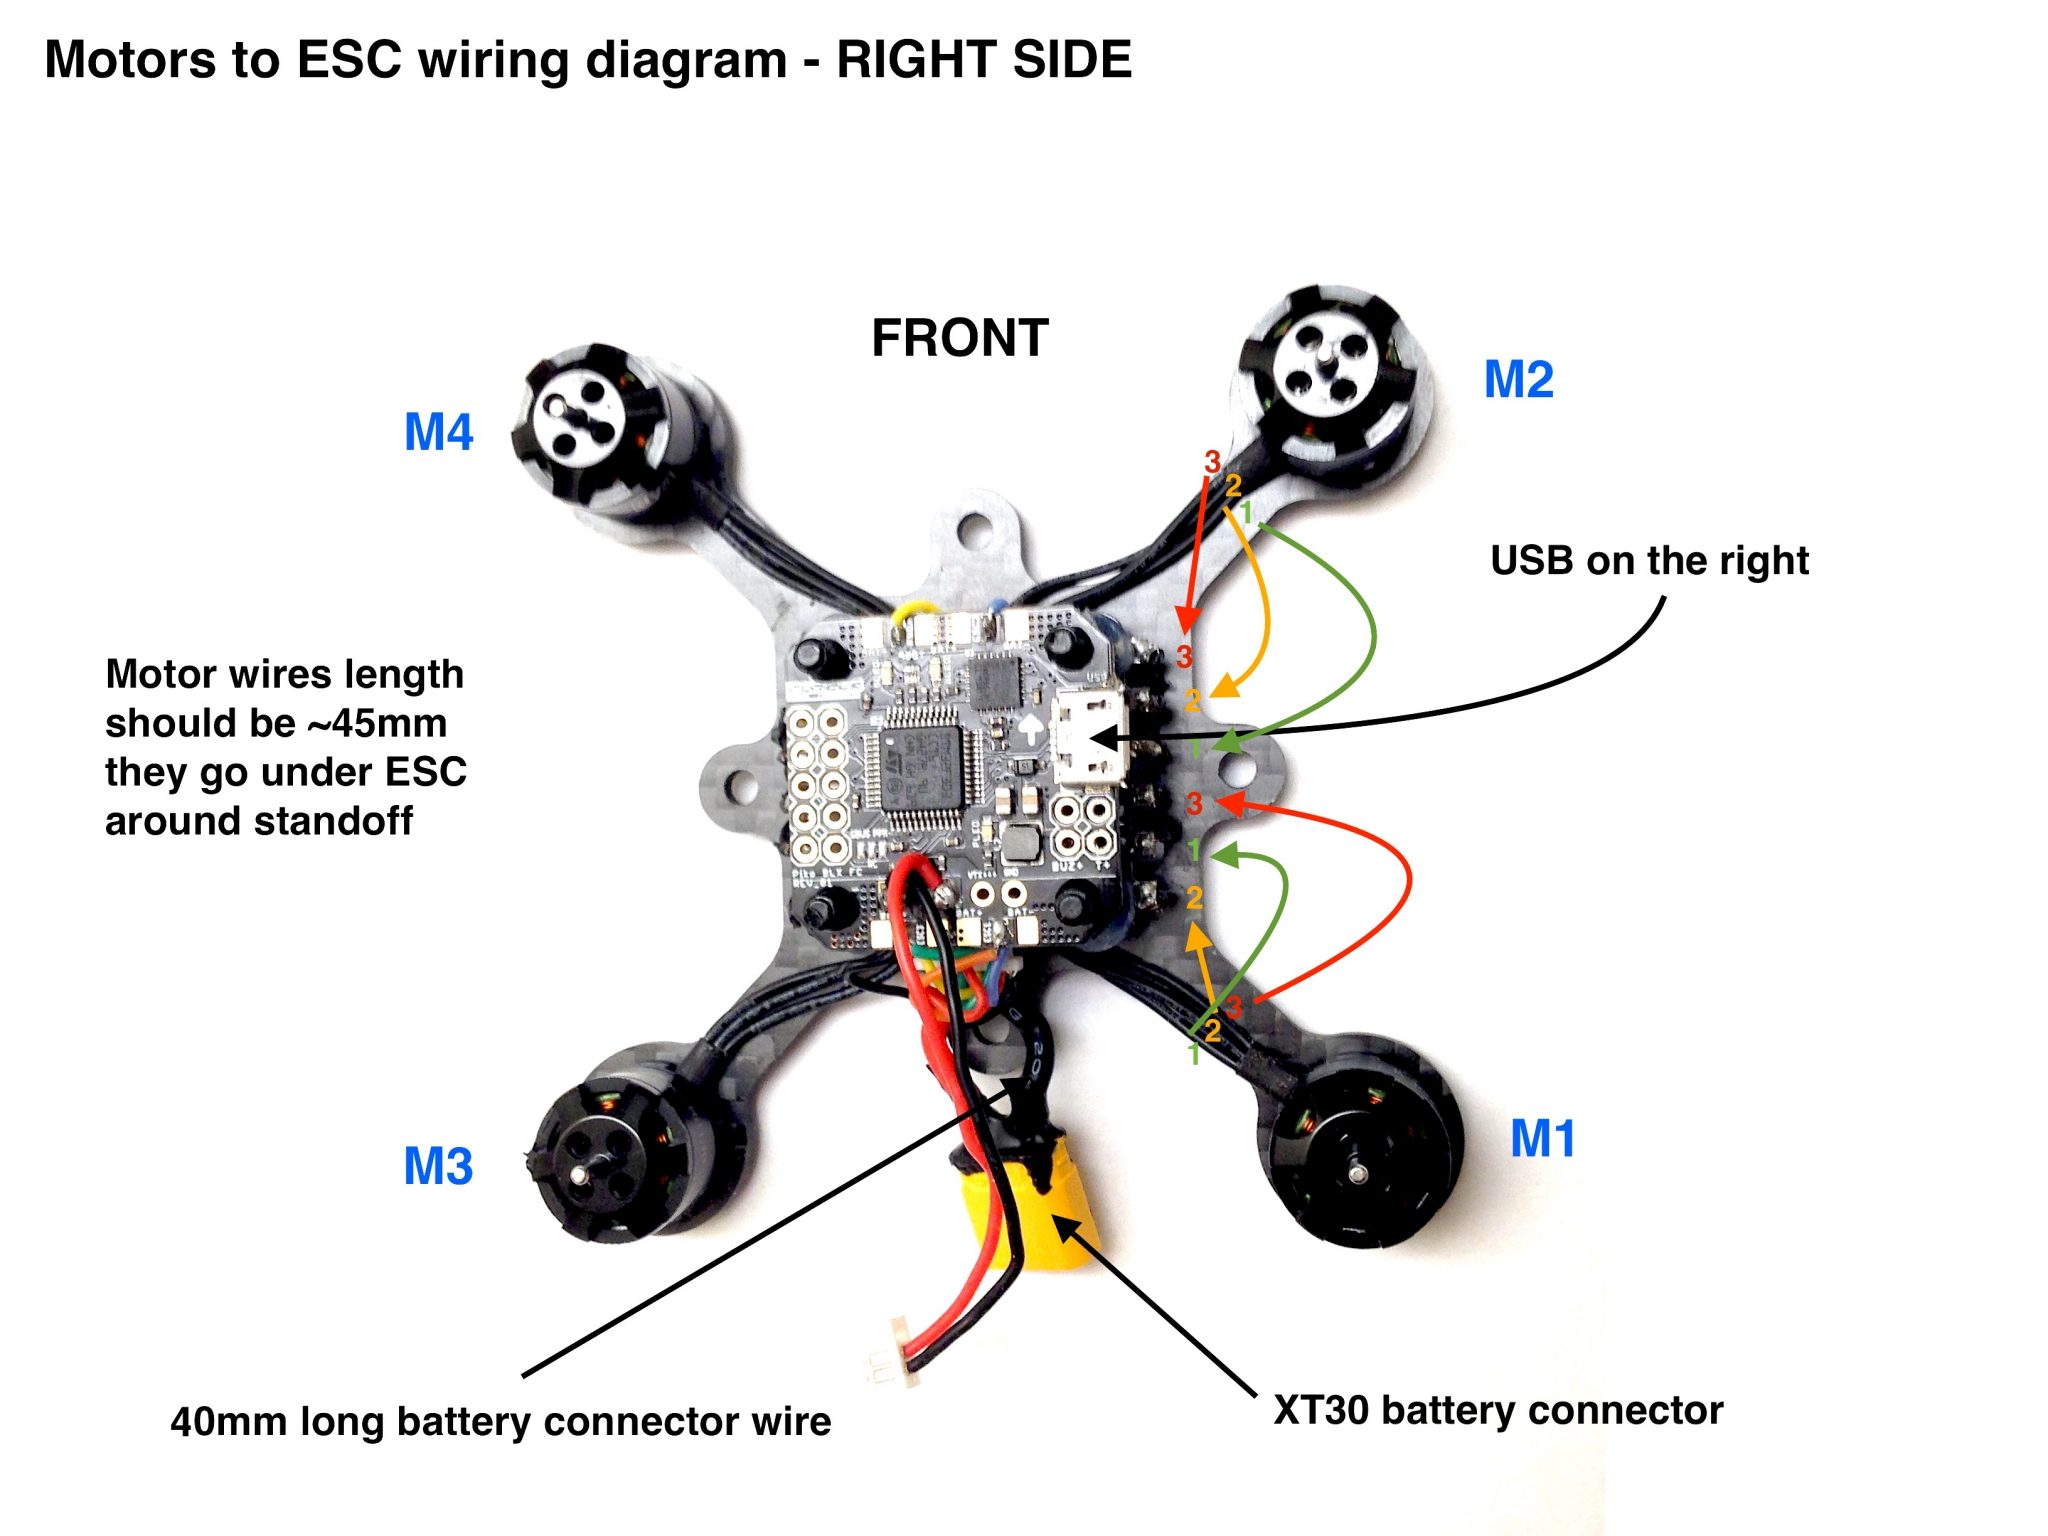 Motor Esc Wiring Diagram : 24 Wiring Diagram Images